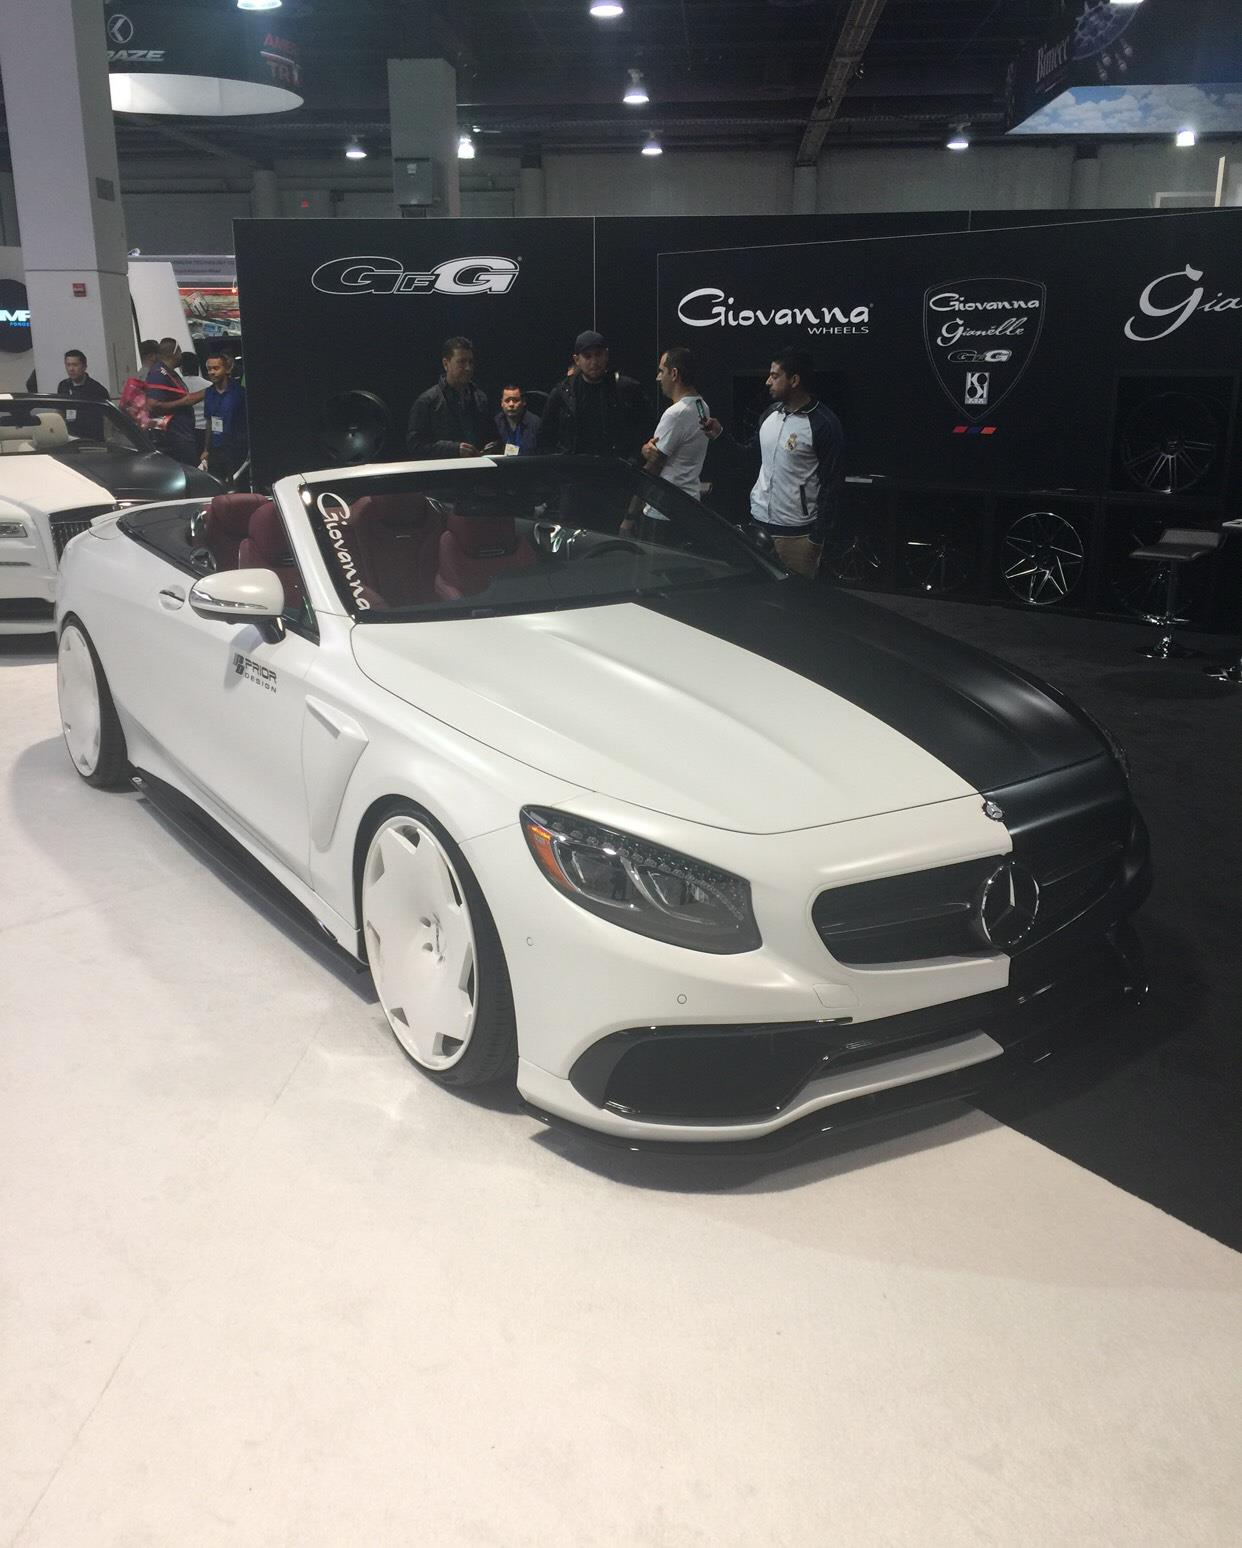 #mercedesbenz #sconvertible #sema2016,Mercedes-Benz